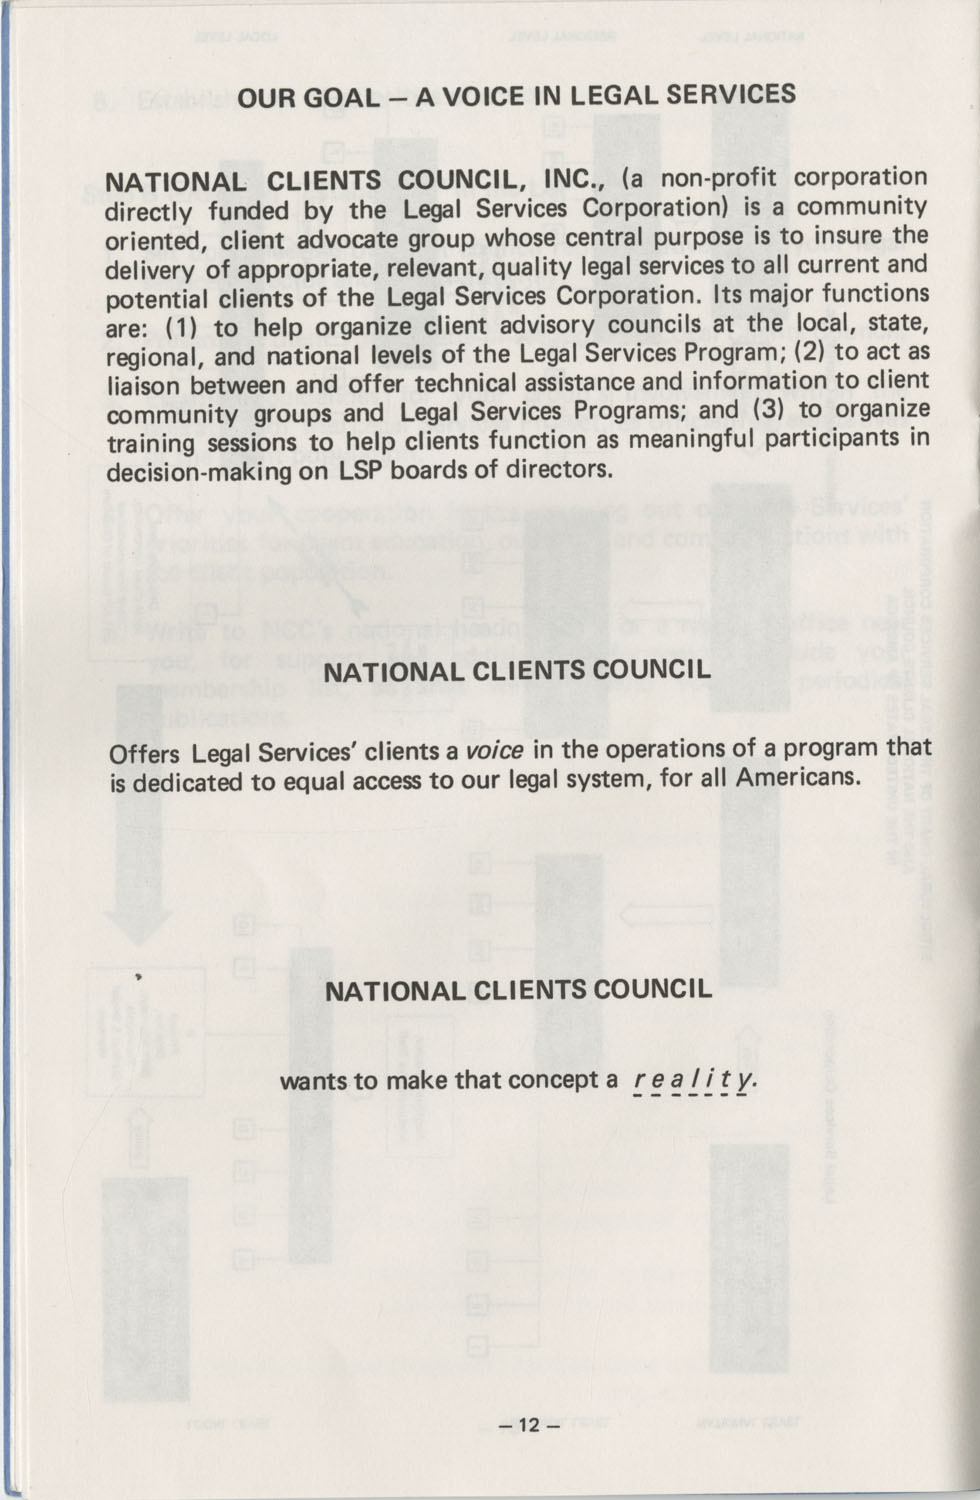 The Why's and How's of The National Clients Council, Page 12